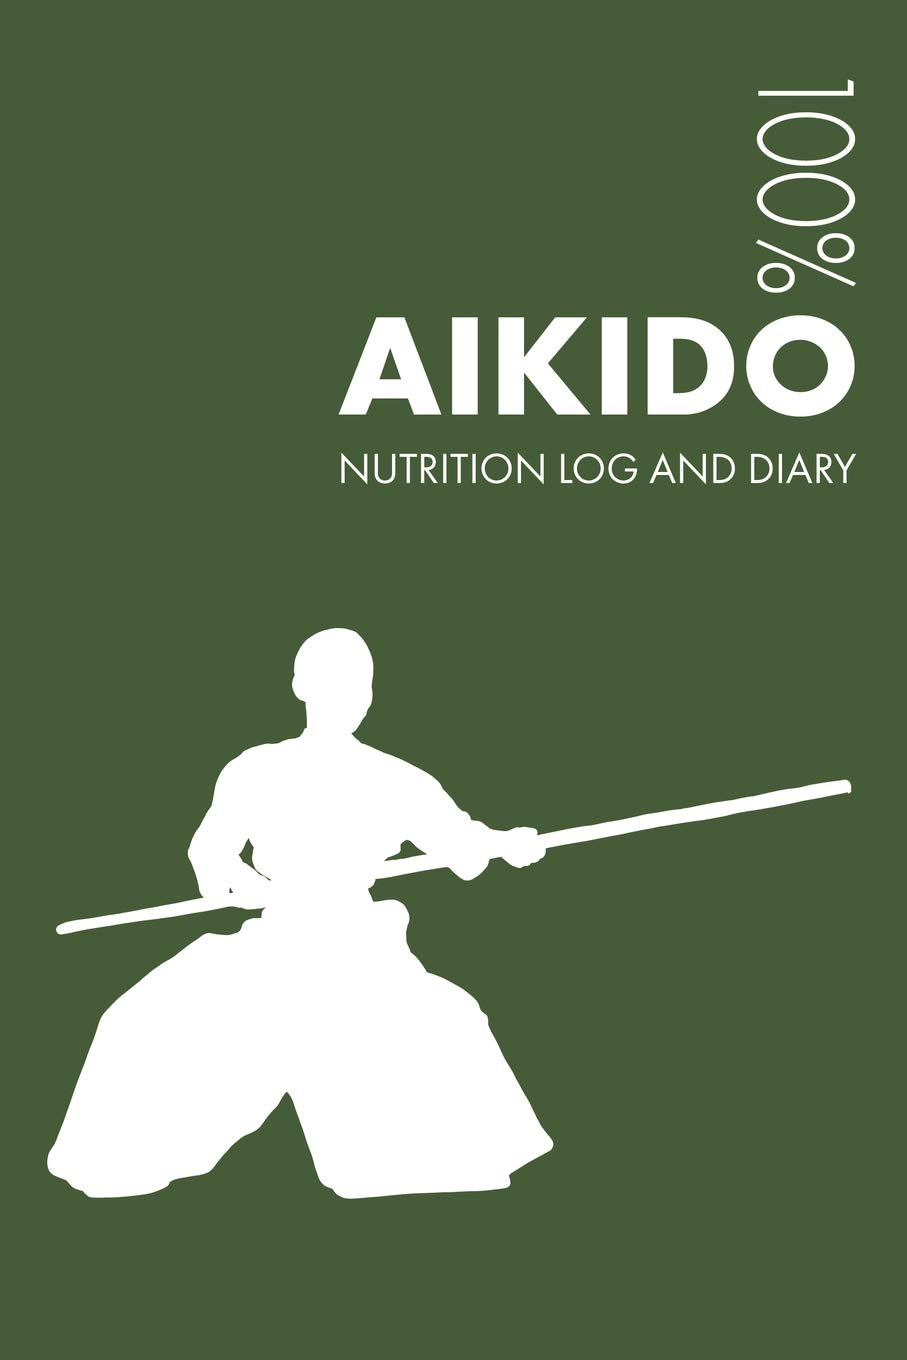 Aikido Sports Nutrition Journal Daily Aikido Nutrition Log And Diary For Practitioner And Instructor Notebooks Elegant 9781795852944 Amazon Com Books